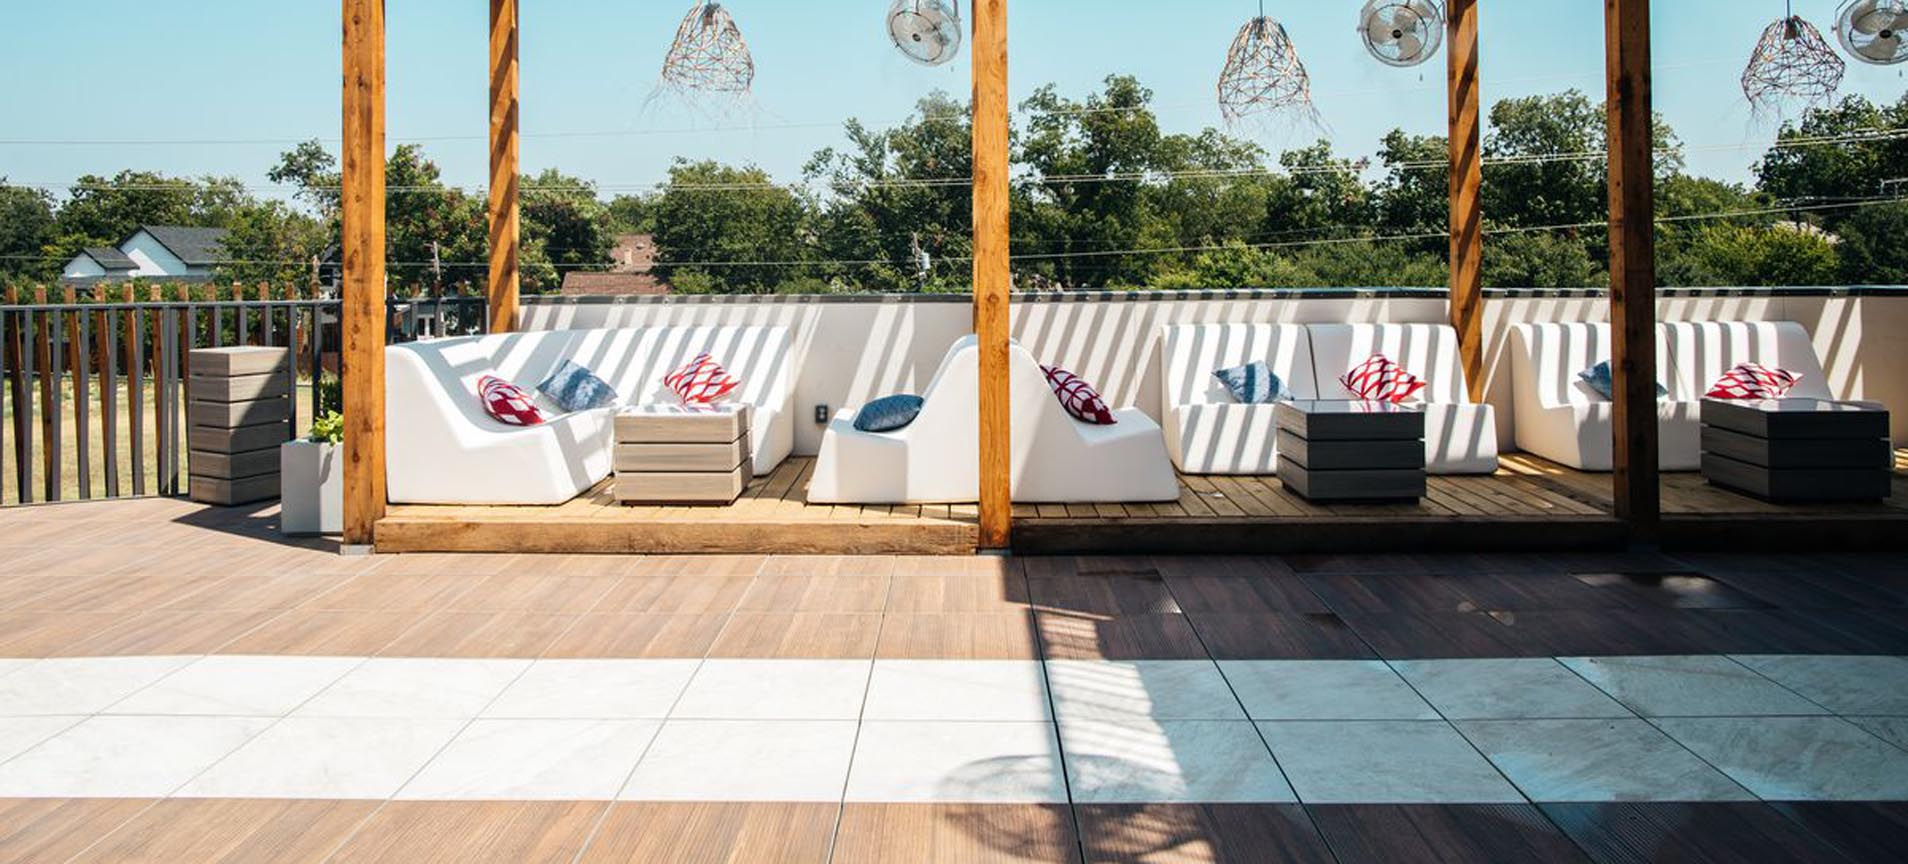 Benefits of Investing in a Roof Deck